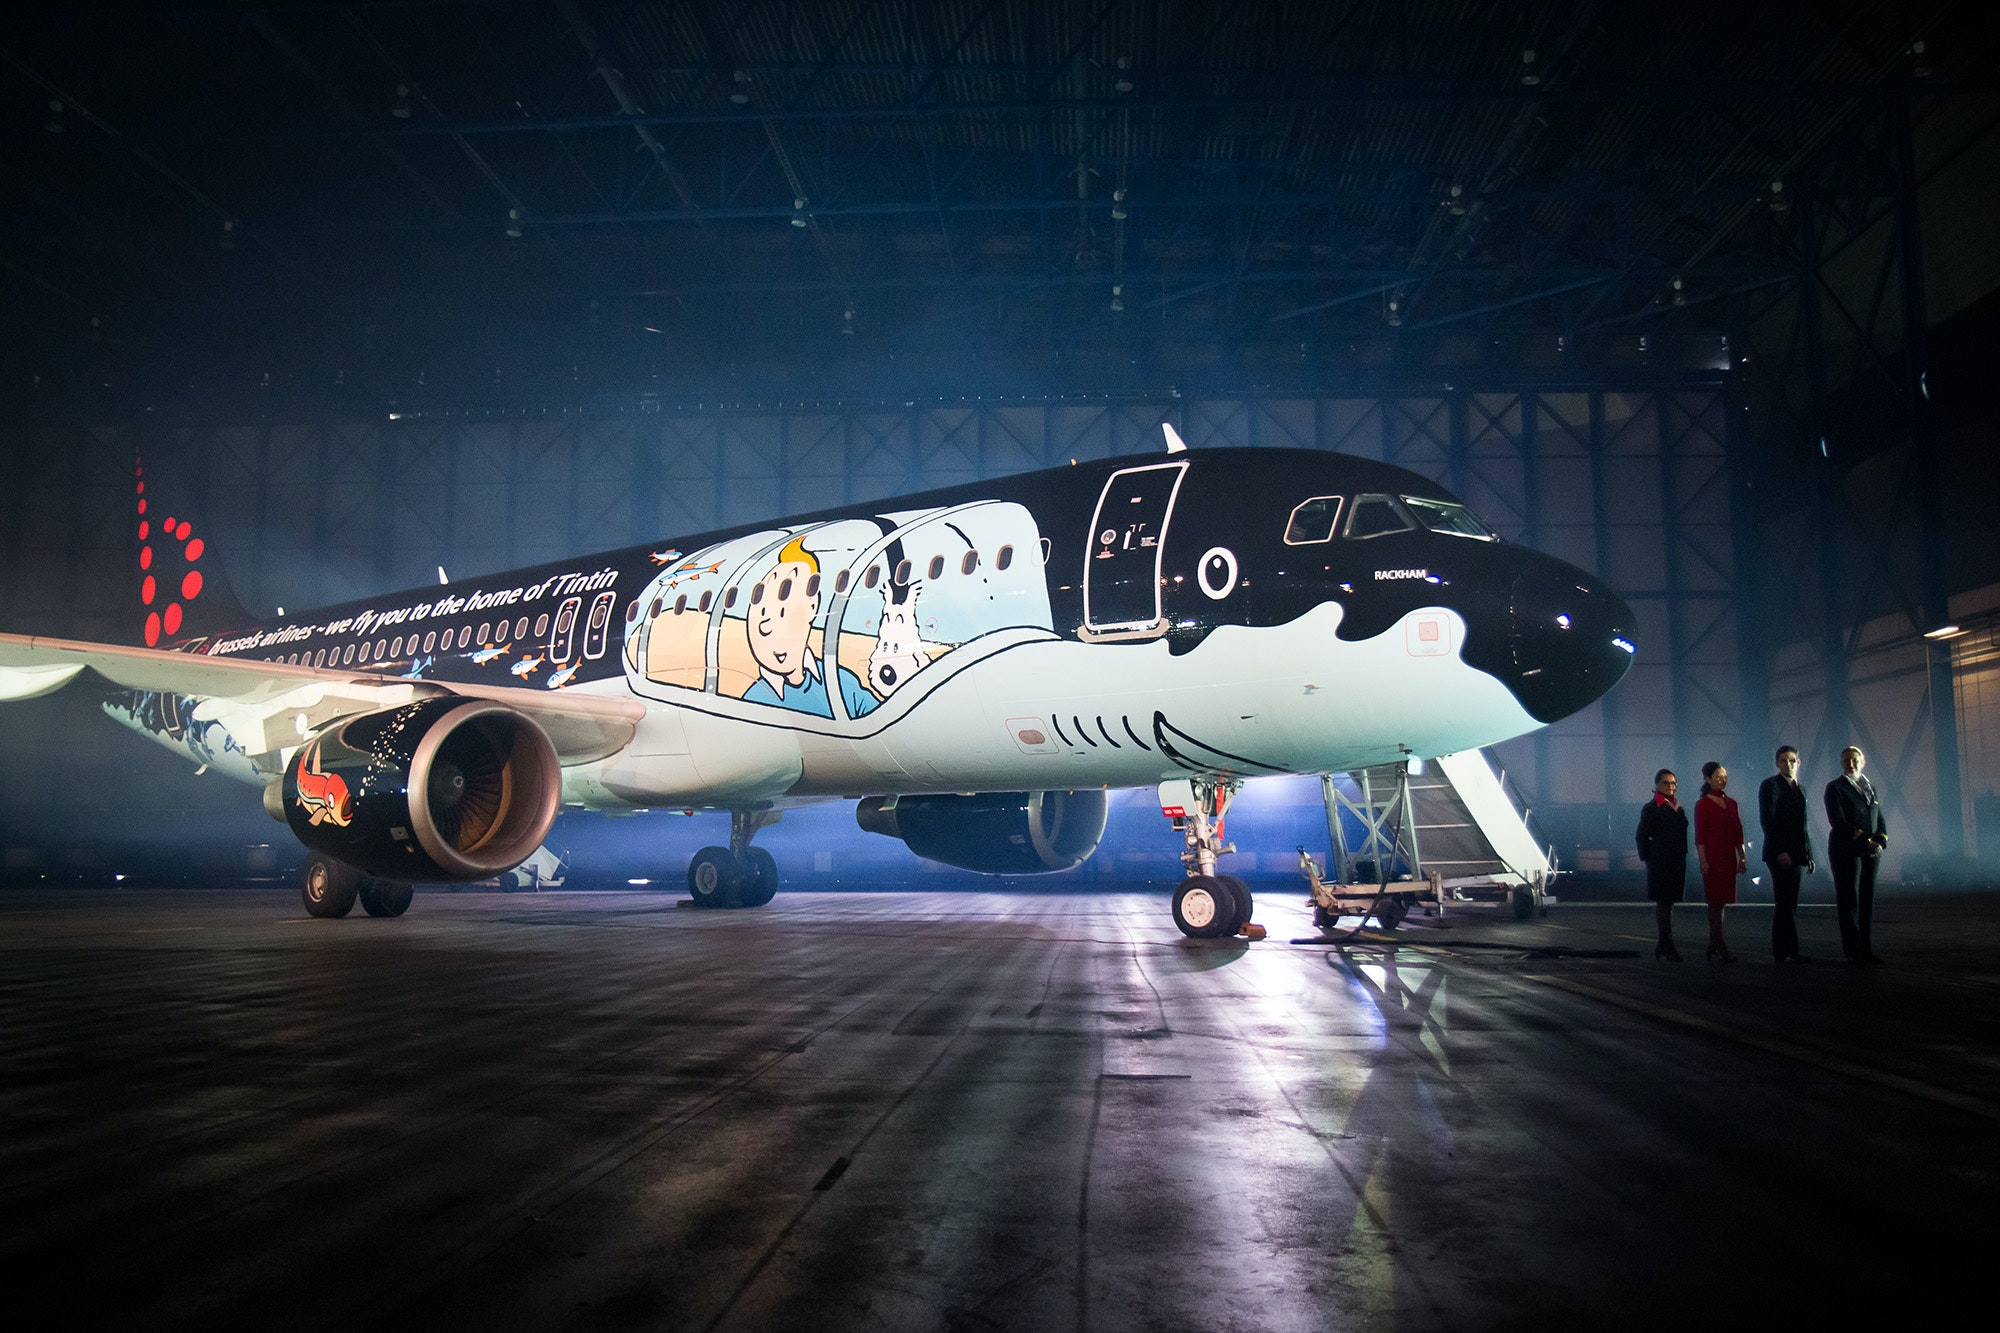 Brussels Airlines painted this Airbus A320 to look like the shark submarine from a Tintin story.